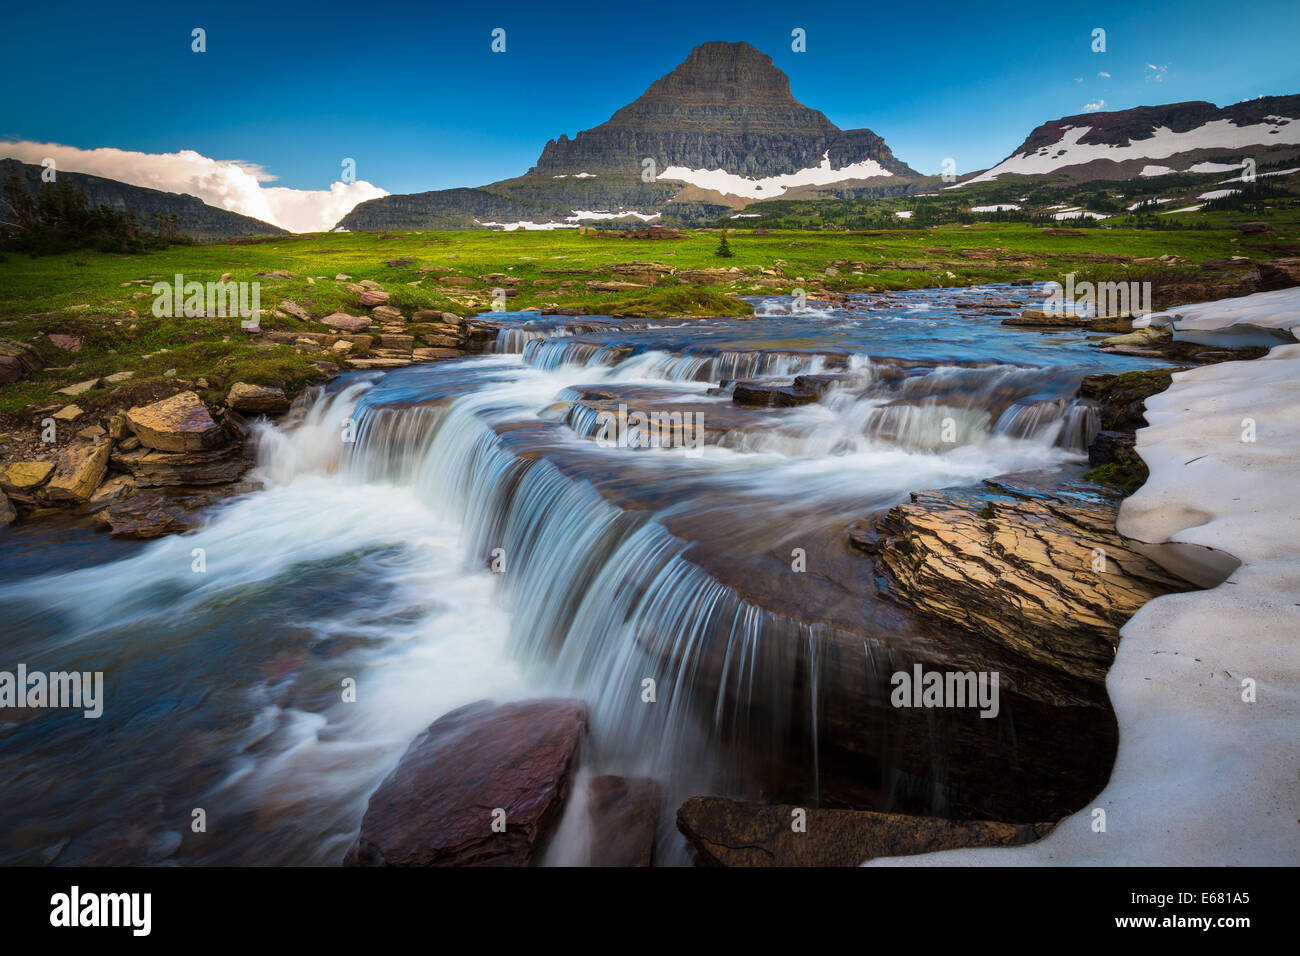 Logan Pass im Glacier National Park, Montana, in der Nähe der US-kanadischen Grenze Stockbild